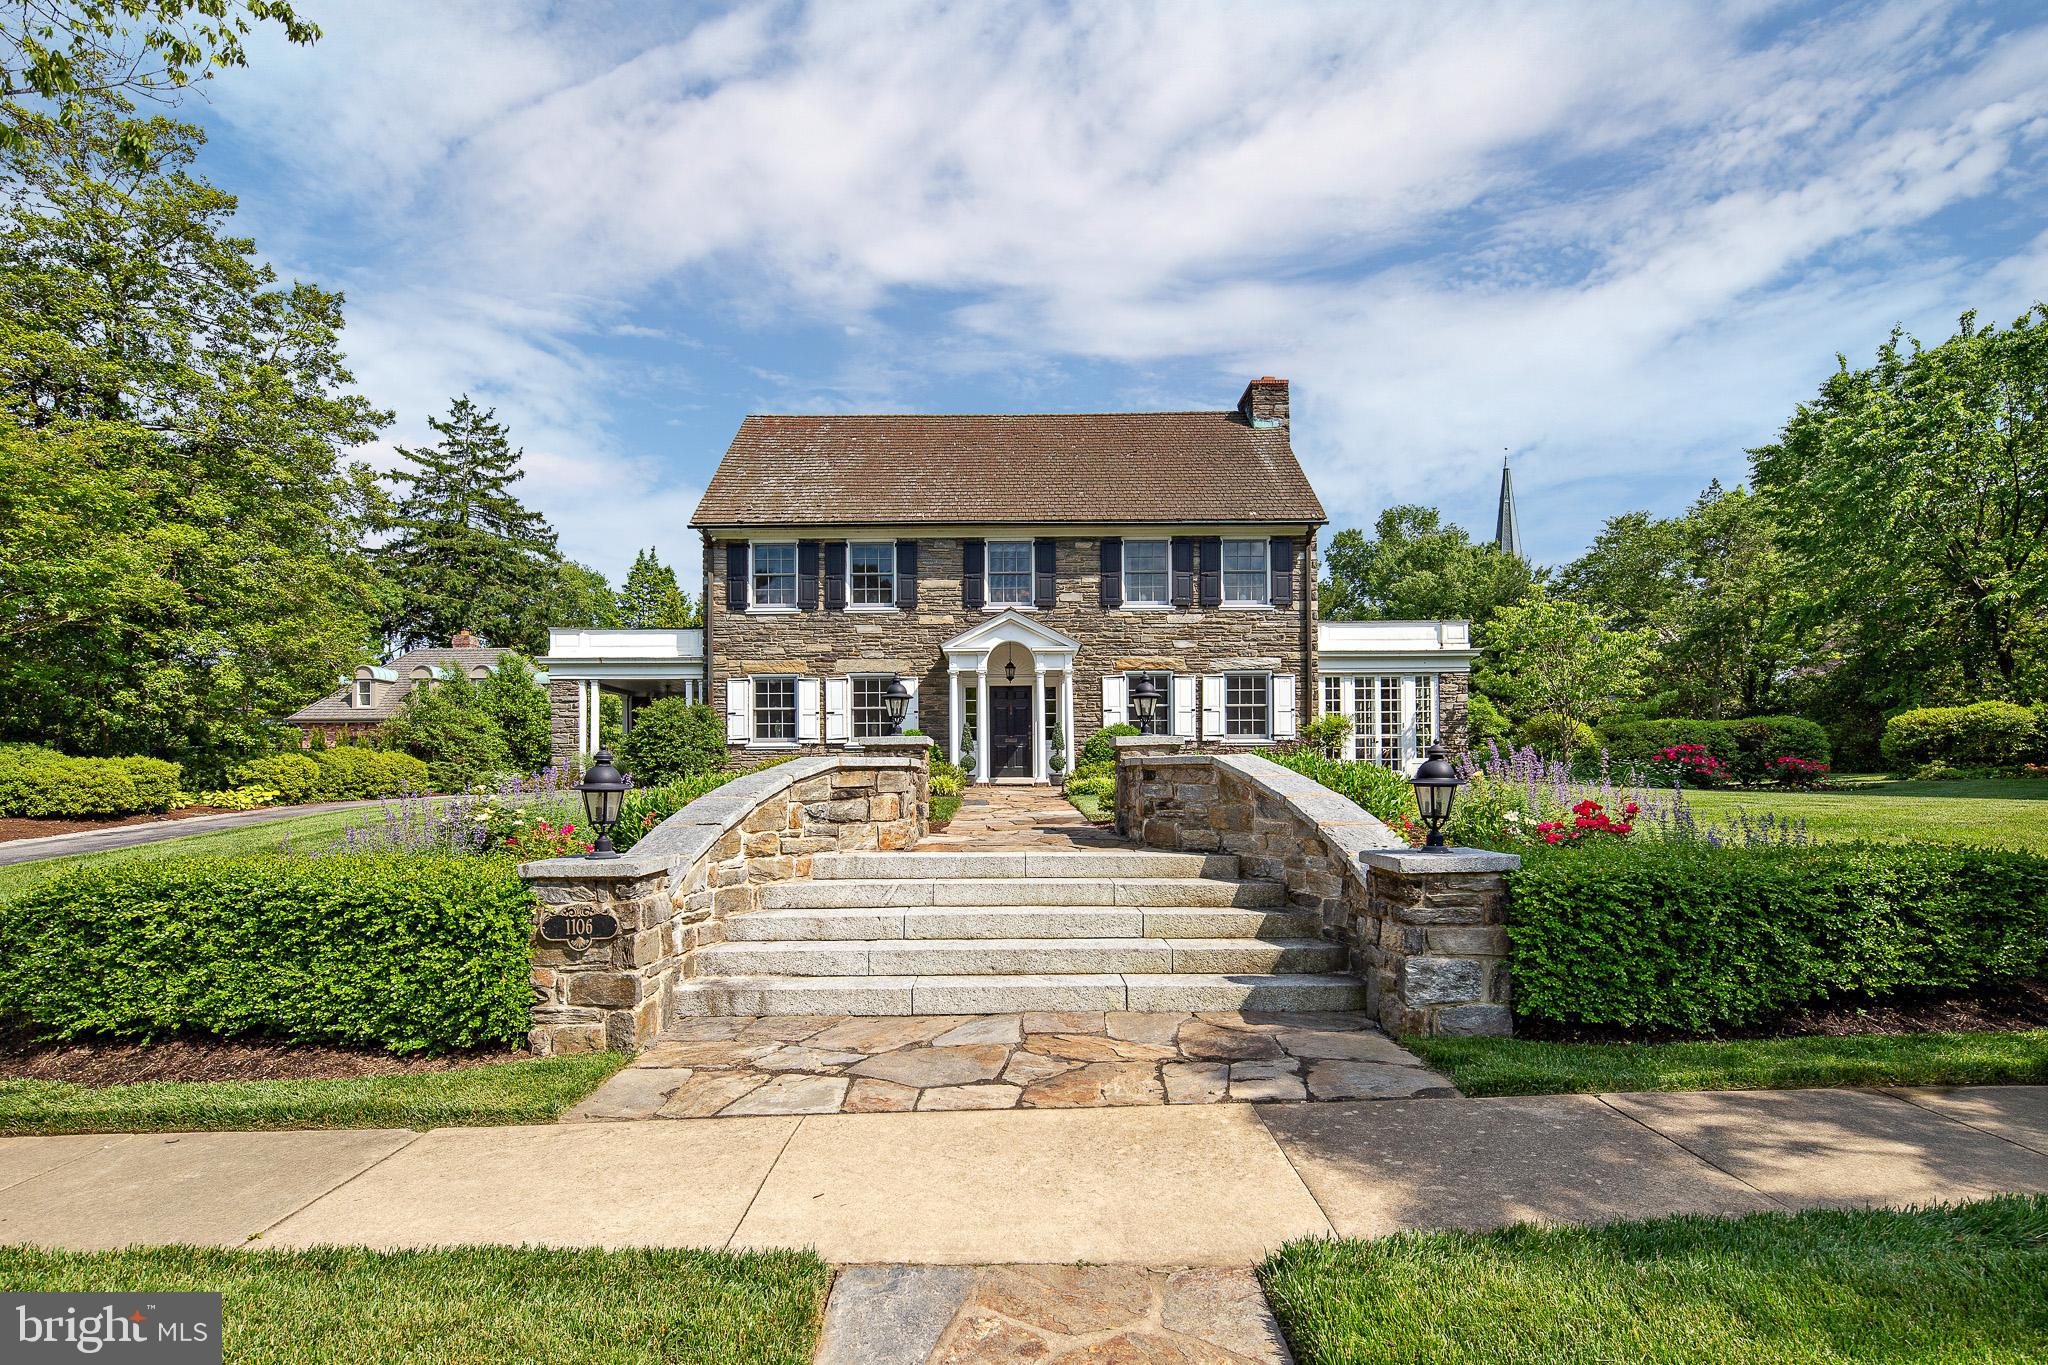 View the video online by following the link:  https://player.vimeo.com/video/426416309?autoplay=1. Stunning stone colonial has been fully renovated & meticulously maintained by the current owner. Elegant entry foyer w/marble flooring, turned staircase, wainscoting & powder rm. The formal living rm w/fireplace & moldings offers access to the enclosed sun porch.  Formal dining rm features wainscoting, crown molding & French doors leading to open side porch.  Gorgeous custom kitchen offers state of the art stainless appliances expansive center island, marble & granite counters. Eating area features a beautiful custom built-in buffet w/refrigerator & freezer drawers. Expanded family rm has an open flow from the kitchen & features high ceilings, gas fireplace, abundance of natural lighting & French doors leading to the expansive rear patio. Spacious master bedroom offers a wall of built-ins, walk-in closet, access to the rooftop deck & a luxurious master bath w/huge walk-in shower w/ tub.  Two additional en-suite bedrooms, & laundry rm.  The 3rd floor includes the spacious 4th bedroom complete w/private bath, storage rm & cedar closet.  Partially finished LL w/recreation rm, large bar & powder rm.  Lovely patio overlooks beautifully landscaped private yard.